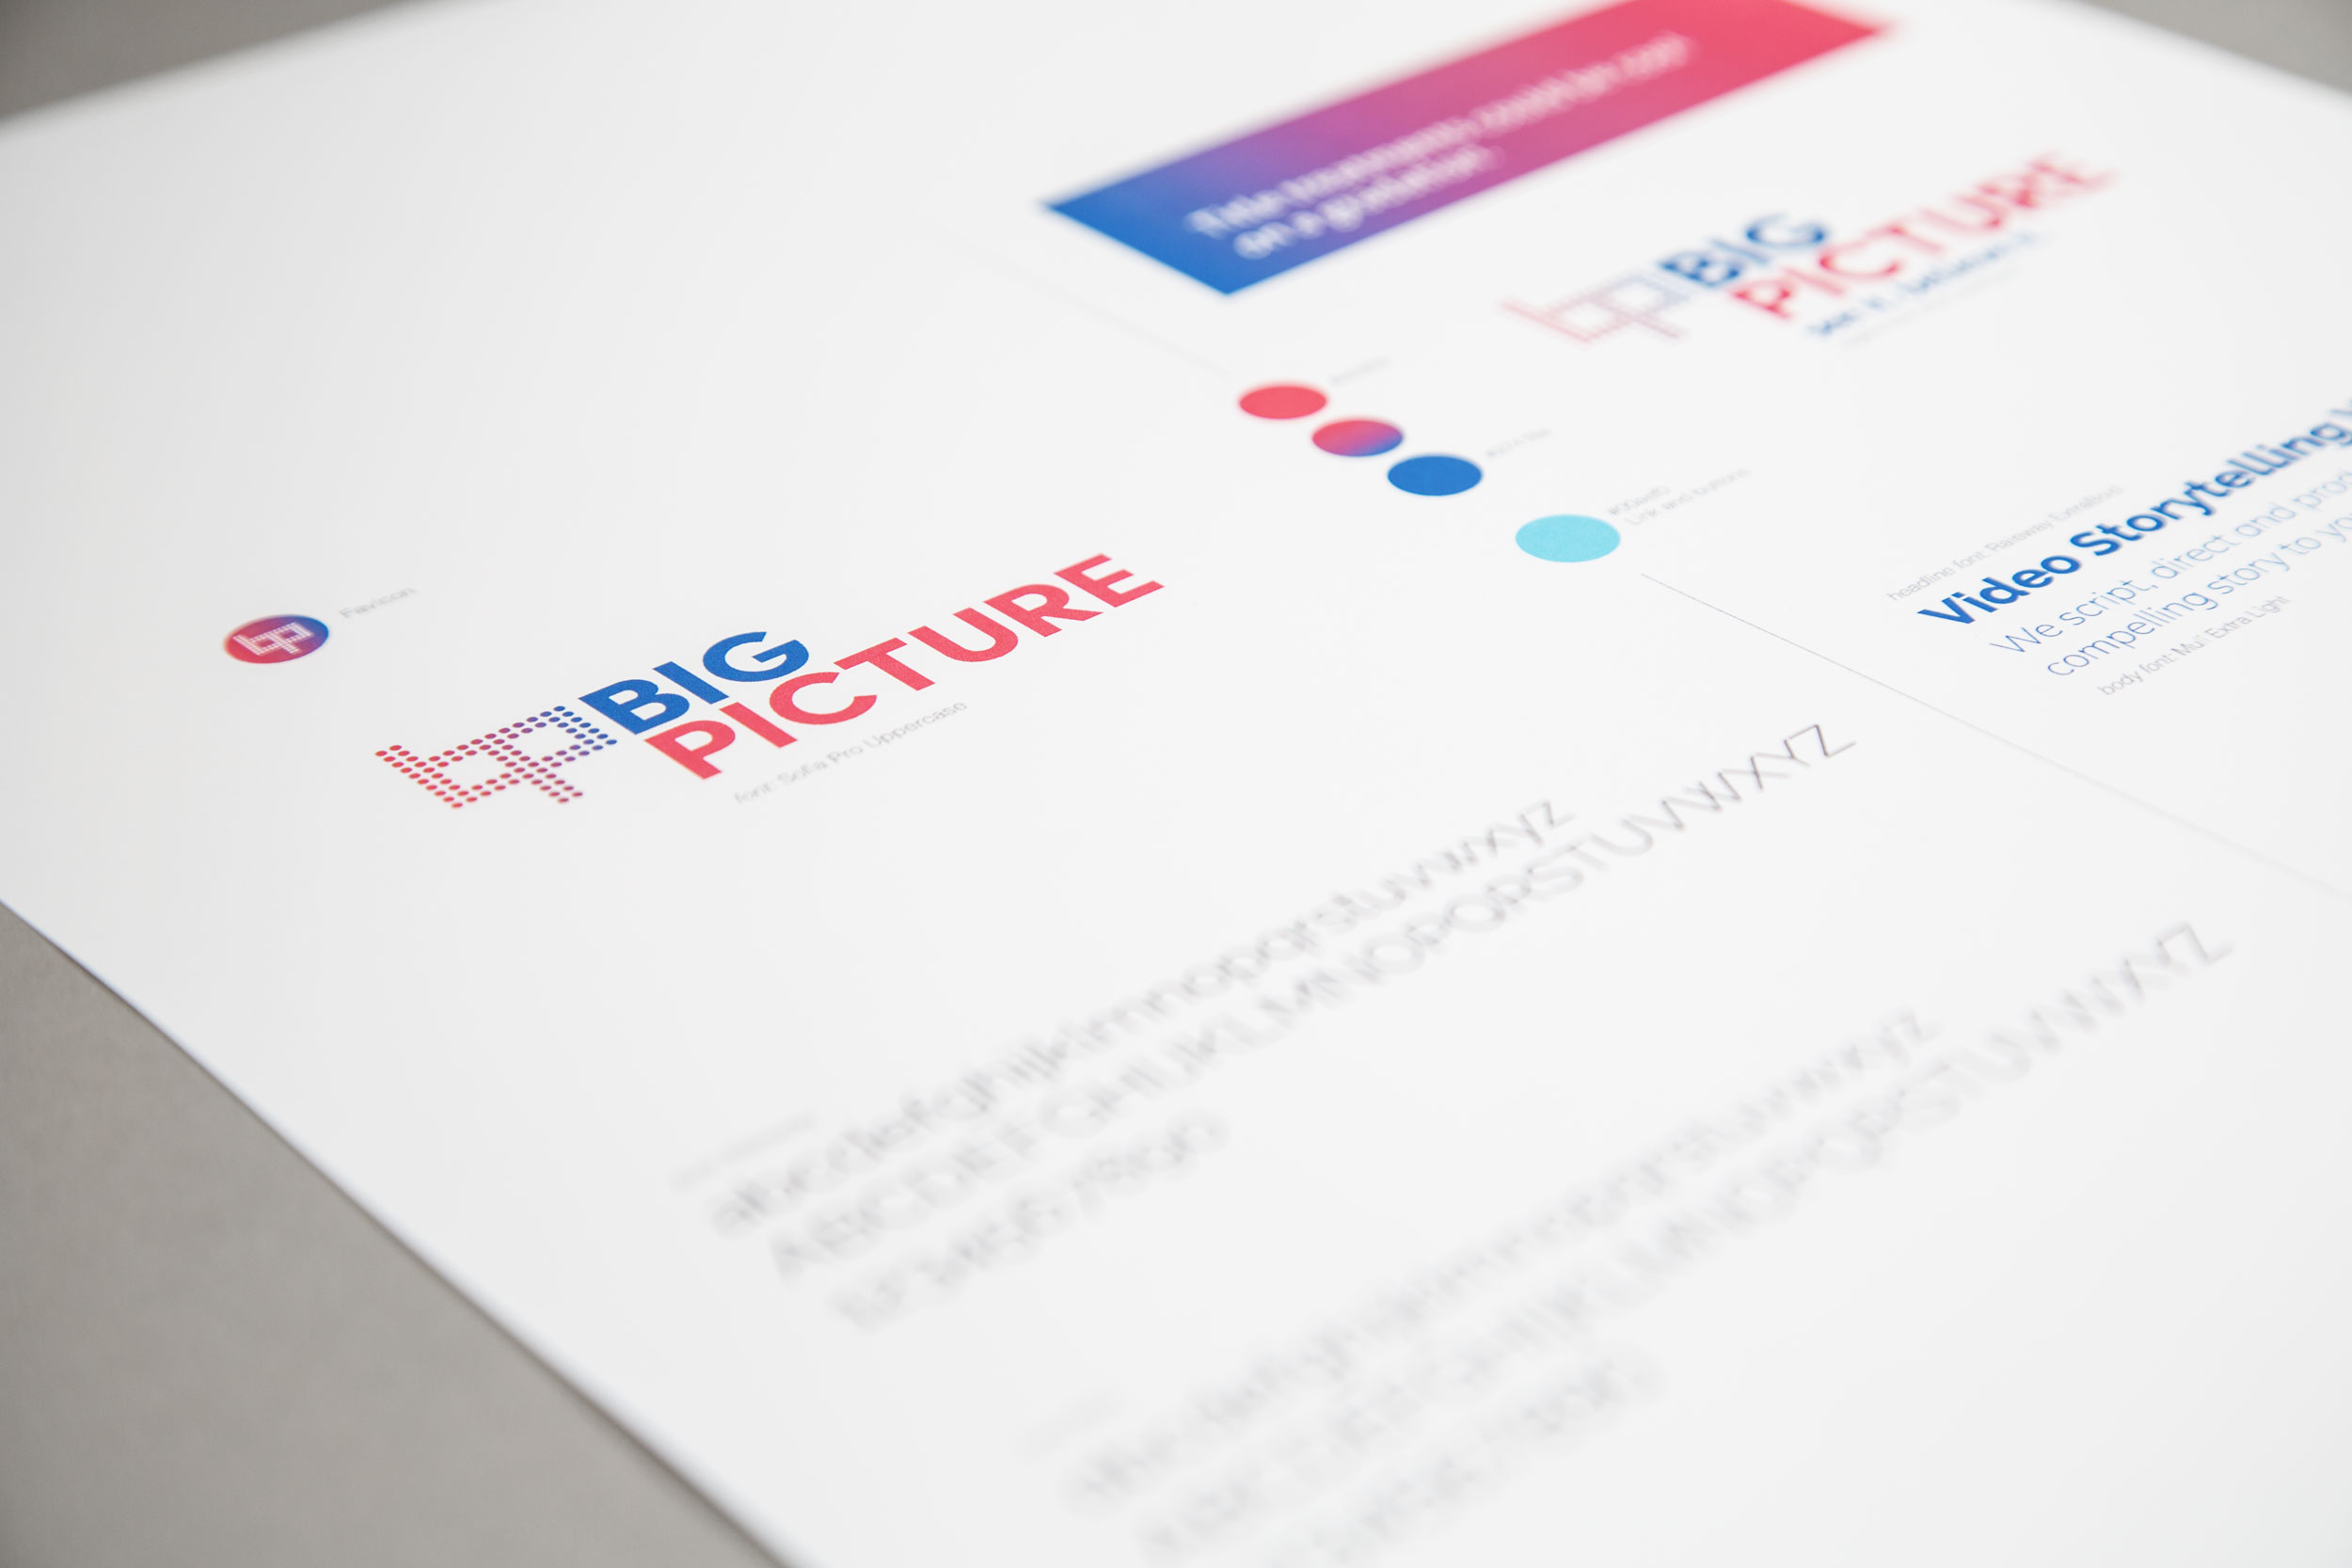 A style guide for Big Picture showing colors, typography and logo.